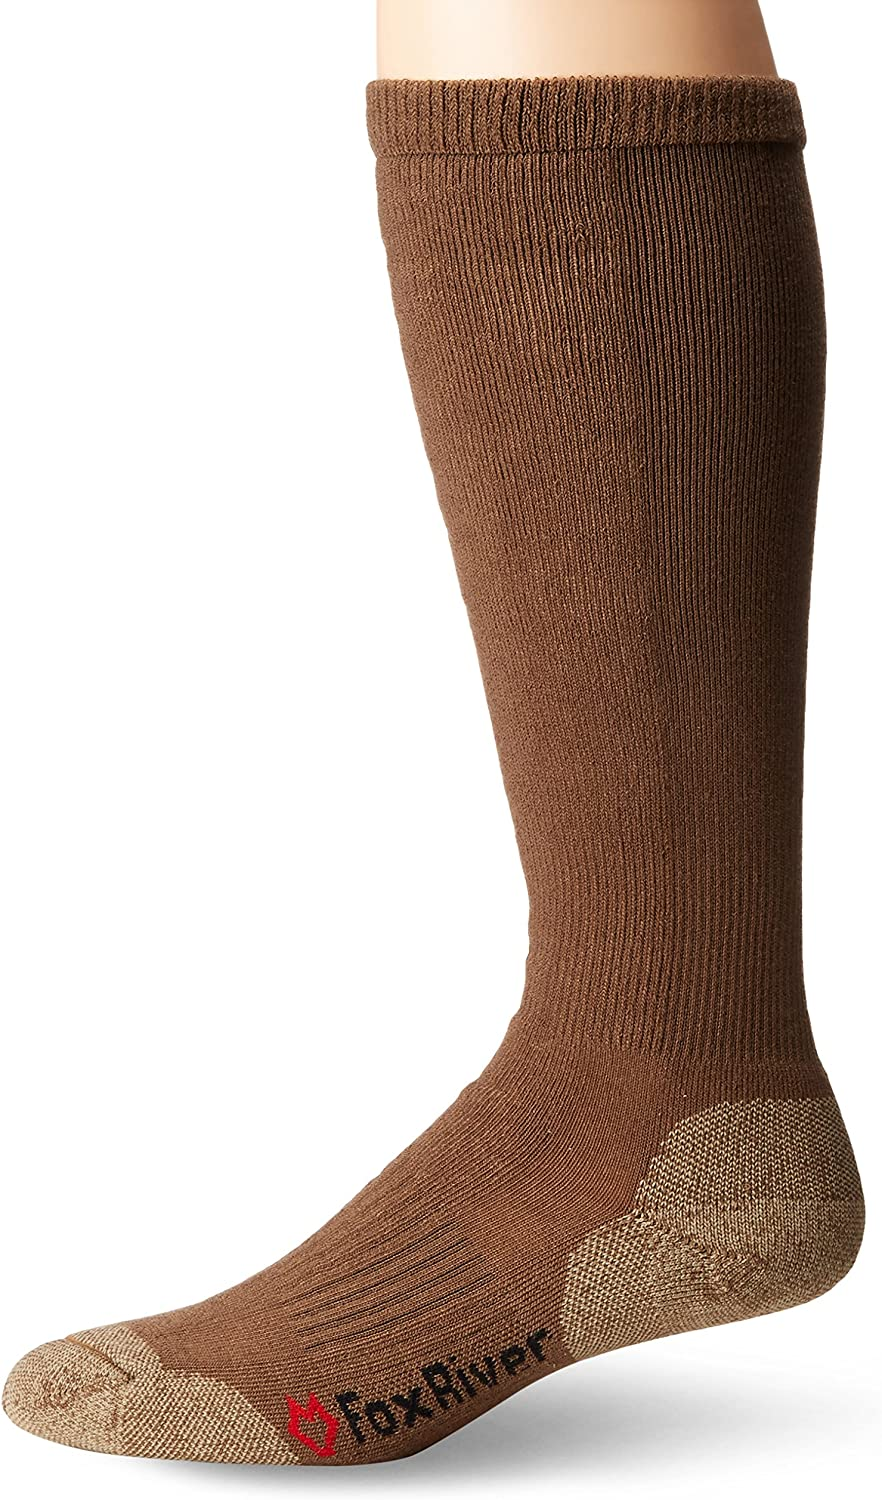 Fox River Adult Fatigue Fighter Over-the-Calf Socks